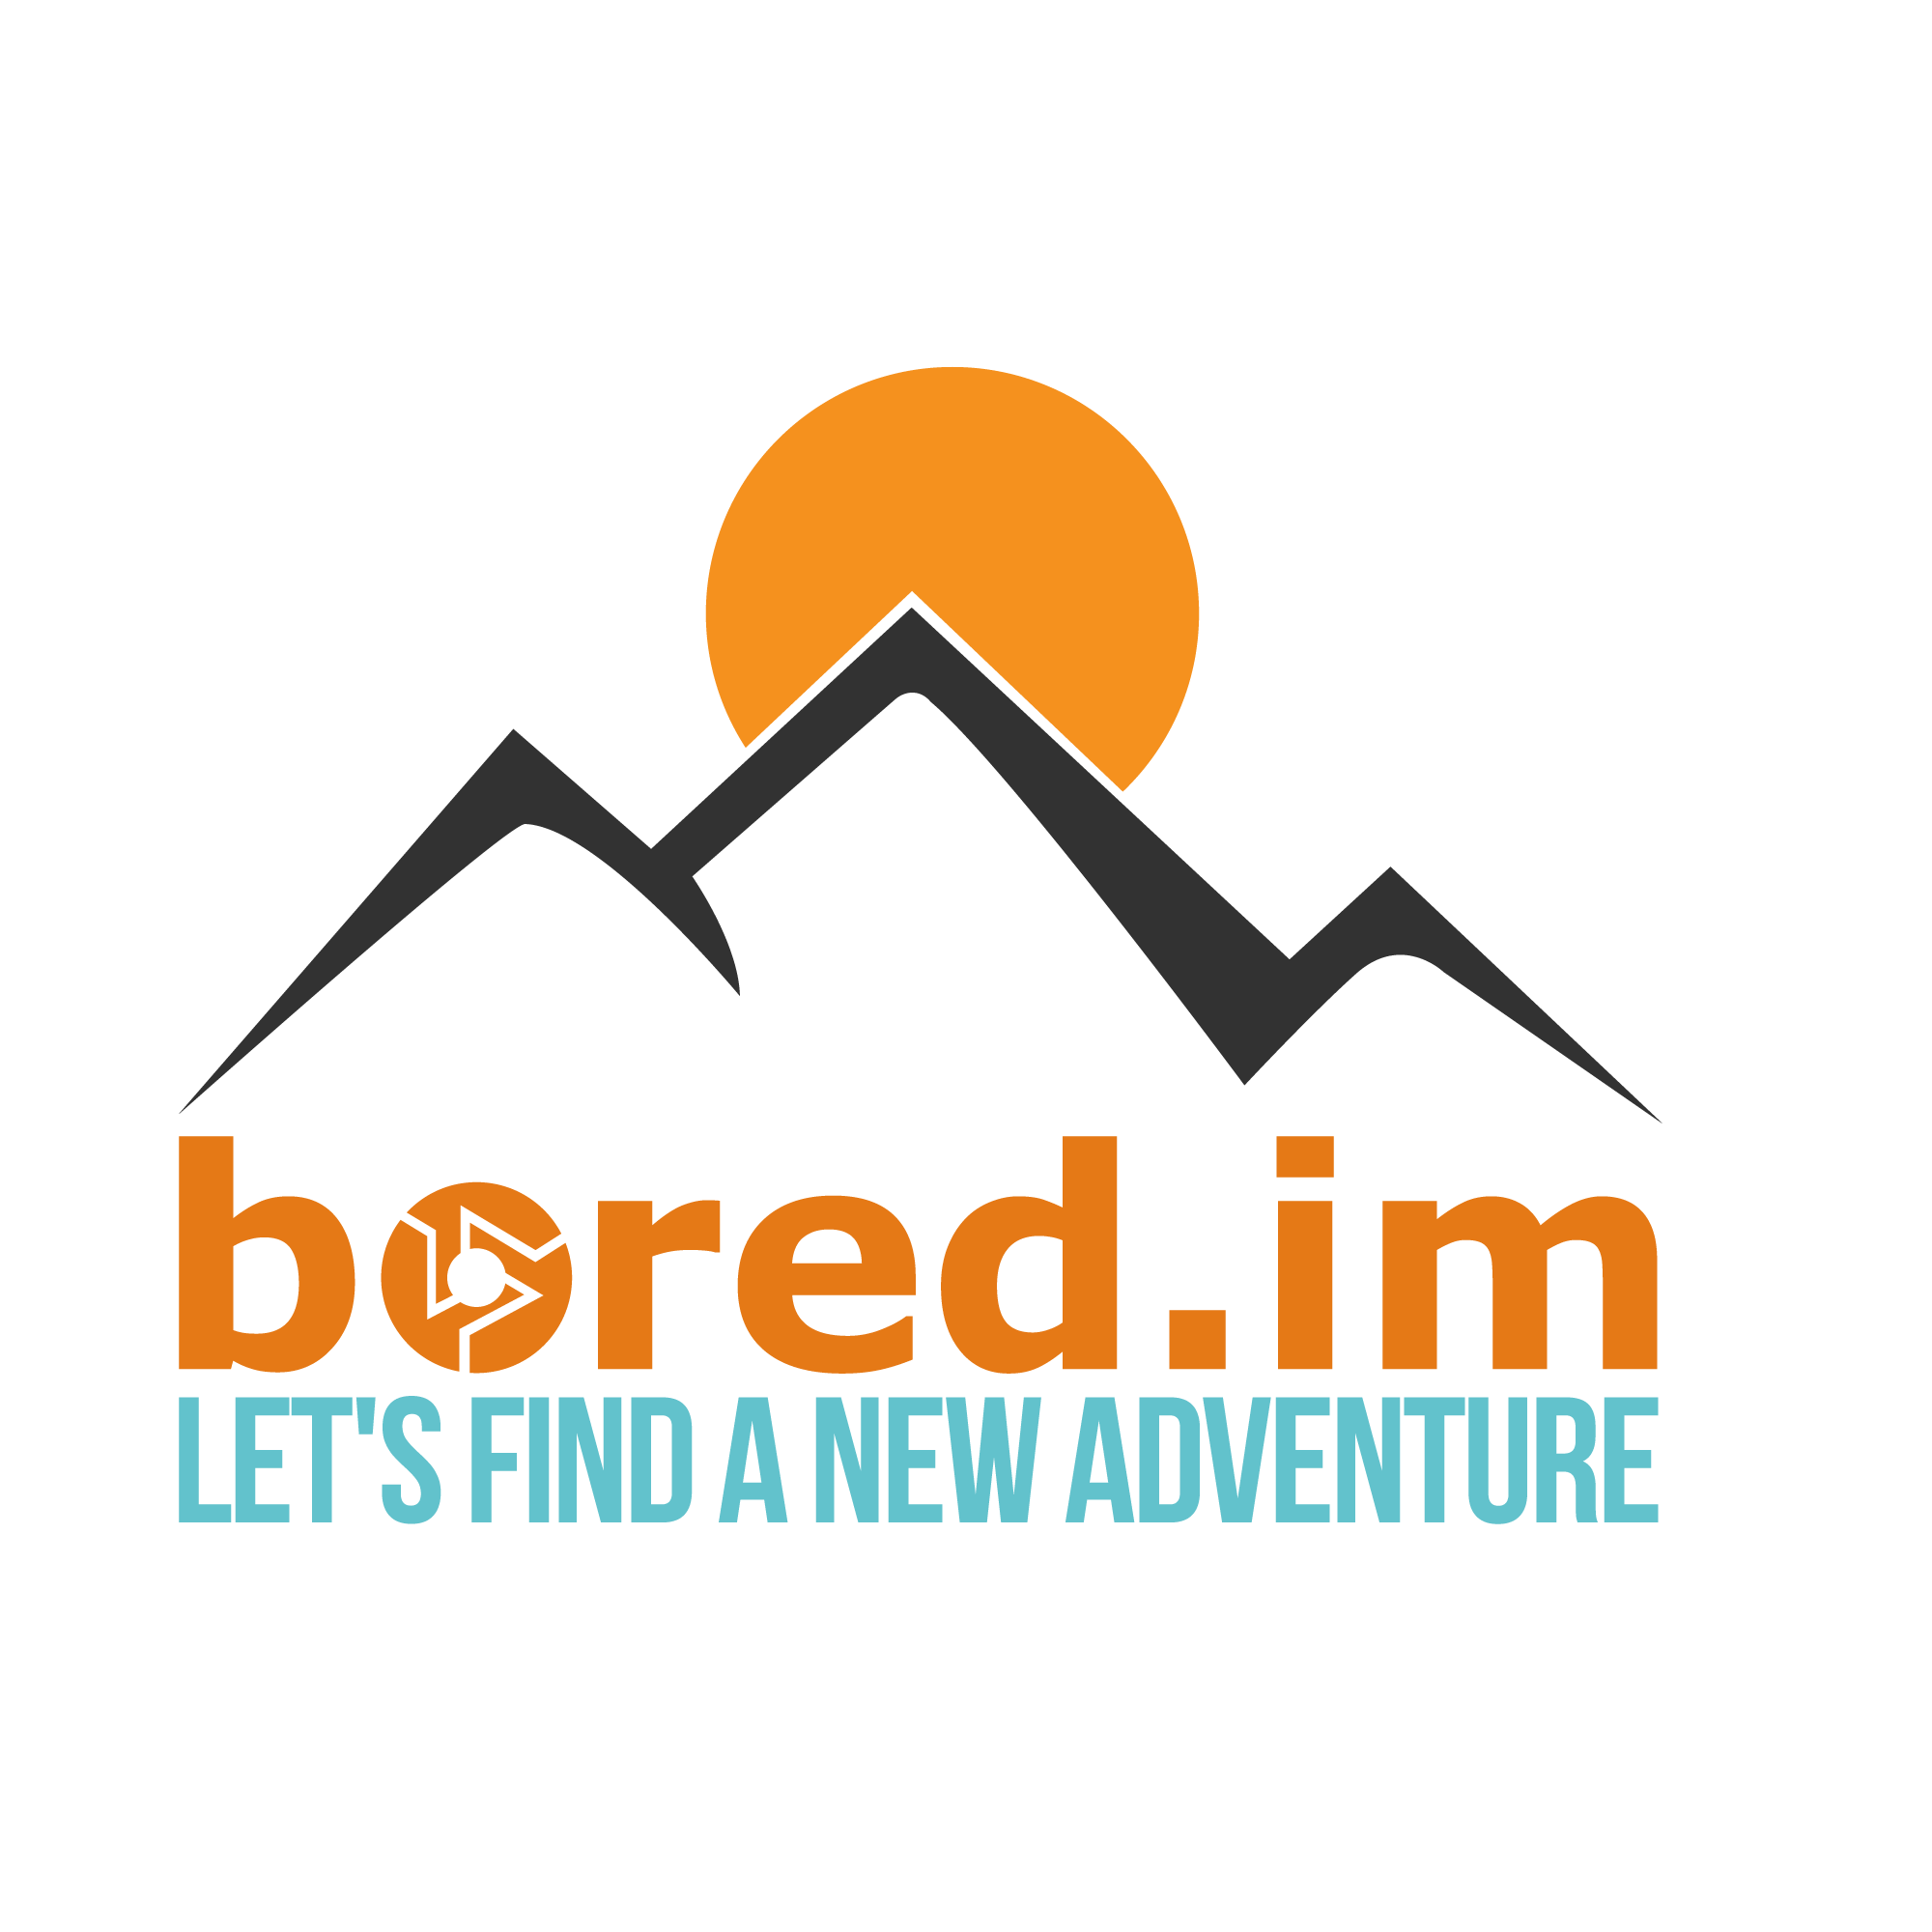 Bored on the Isle of Man? Let's find a new adventure!